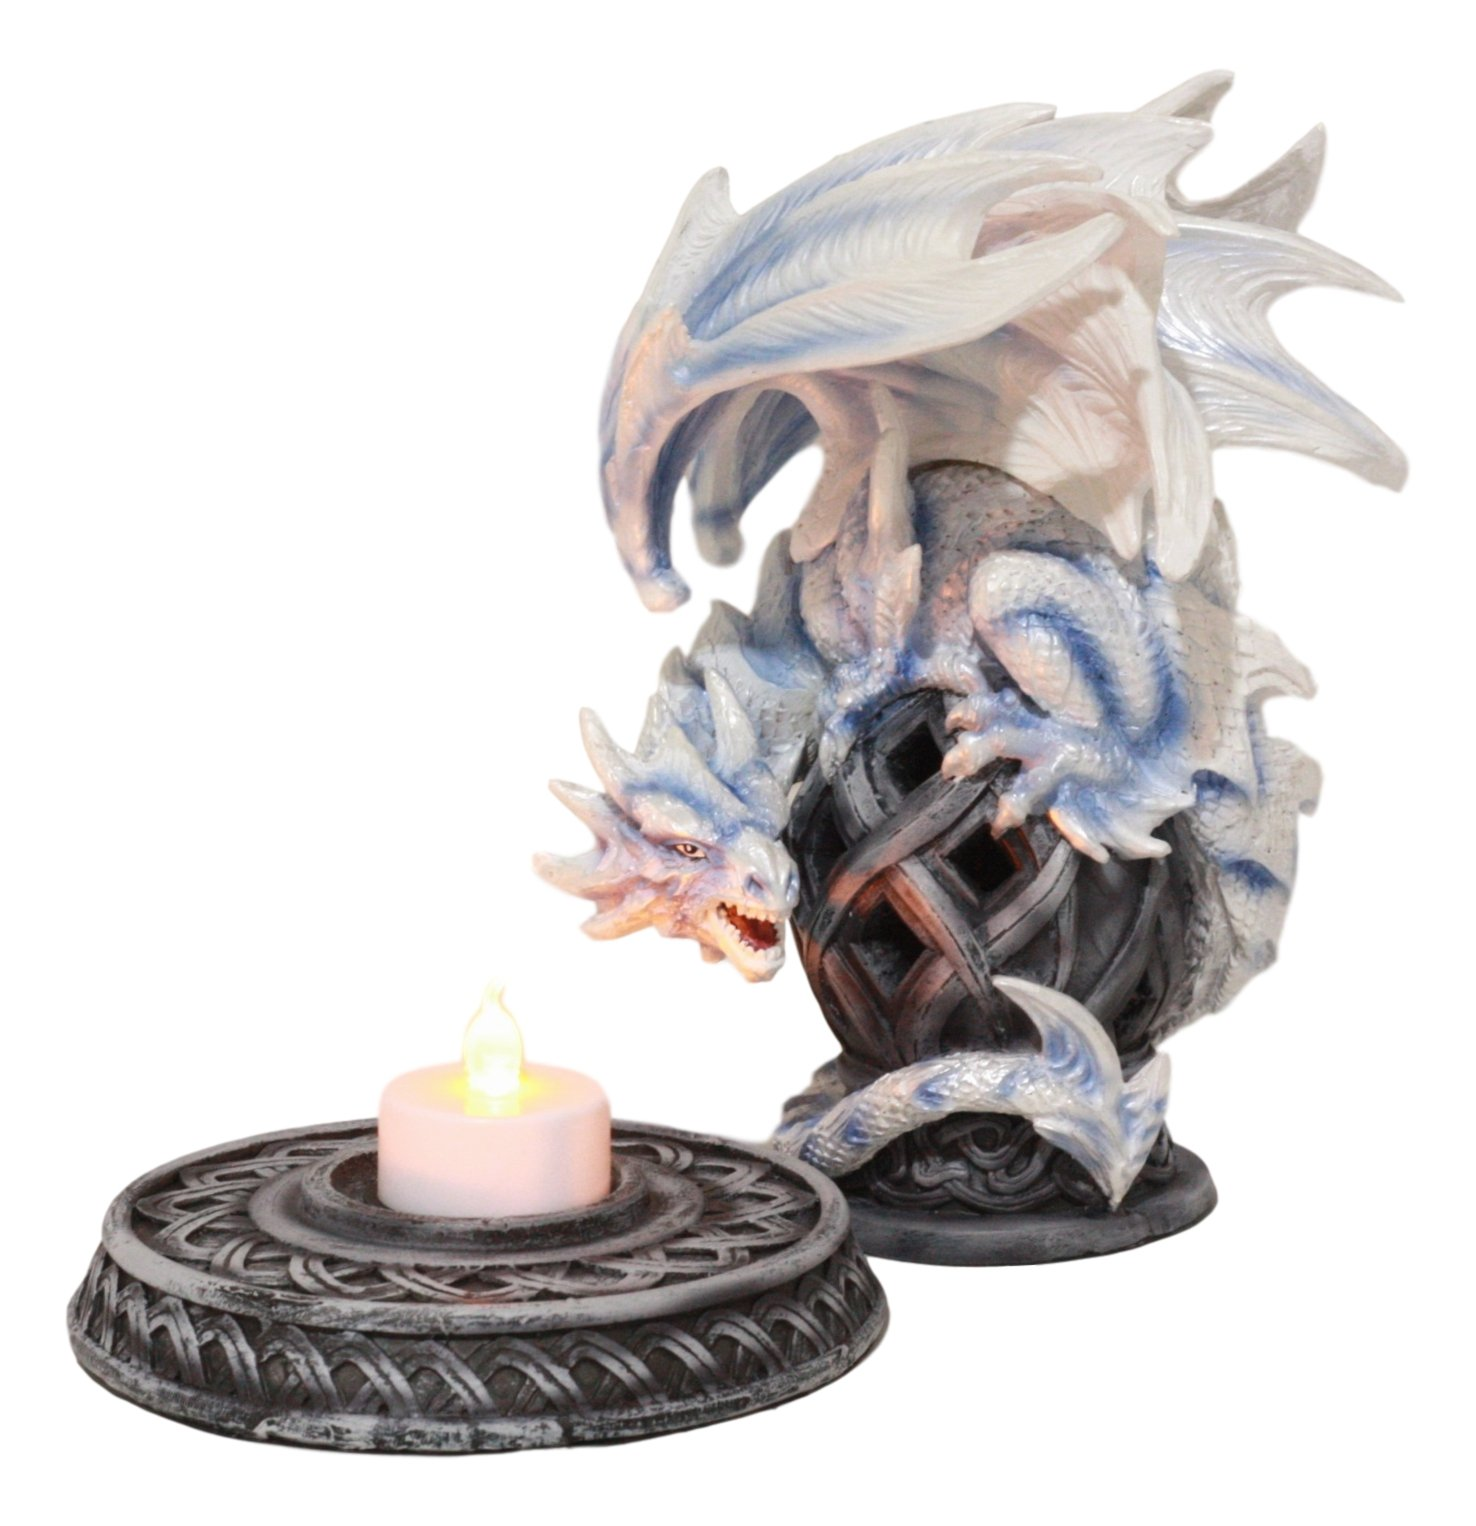 Ebros Guardian of Celtic Tomb White Icycle Dragon Backflow Cone Incense Holder Statue 8.5''Tall Fantasy Icelandic Dragon LED Tea Light Candle Holder Figurine by Ebros Gift (Image #6)